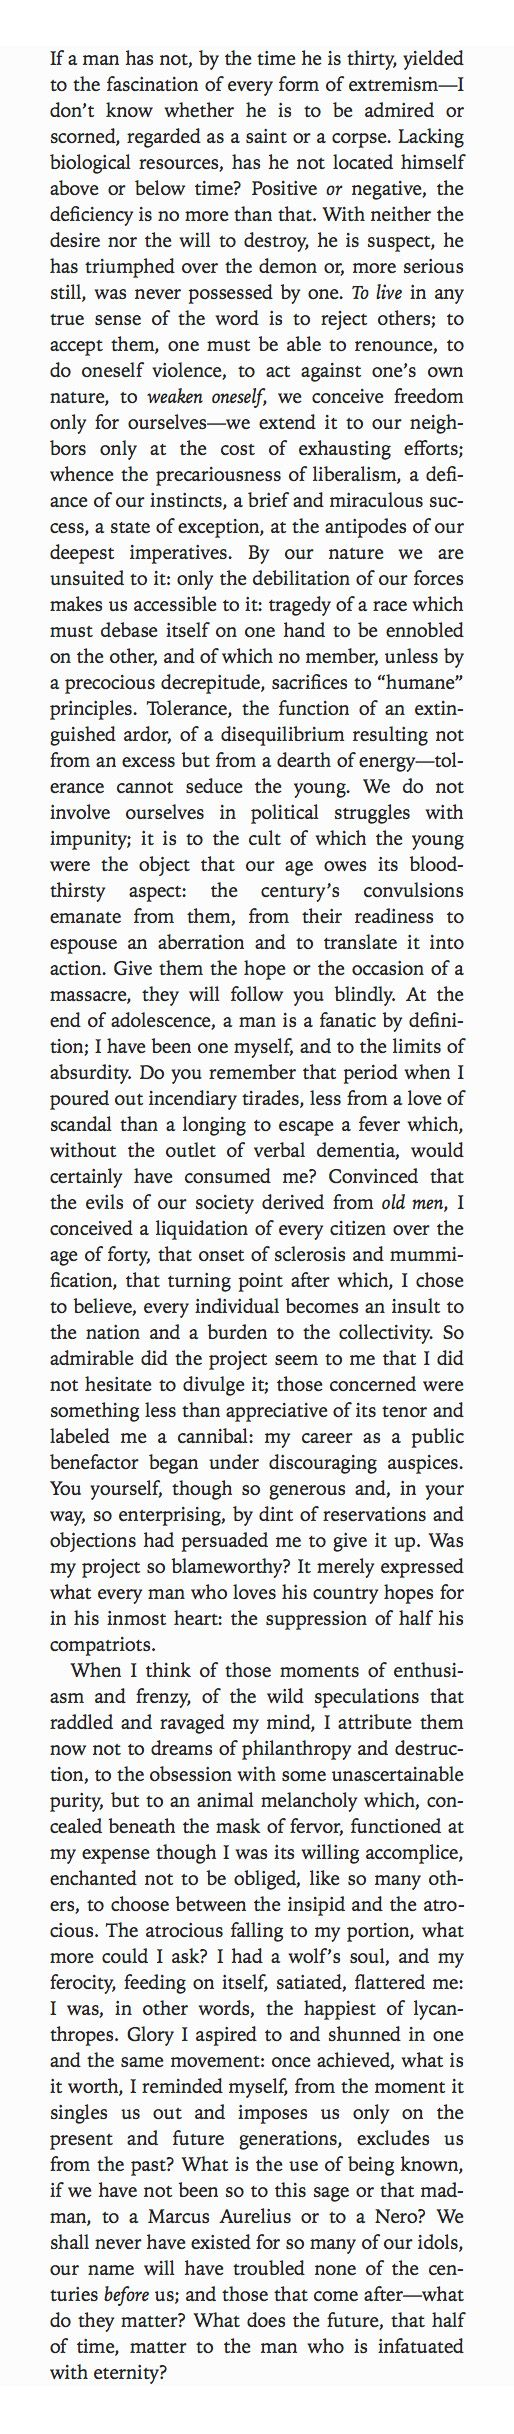 High School Essay Emil Cioran On His Youthful Extremism From History And Utopia Letter To A  Faraway Friend Philosophy Essay Q  Emil Cioran The King Of Pessimists   Abortion Essay Thesis also Health And Fitness Essay Emil Cioran On His Youthful Extremism From History And Utopia  Buy Essay Papers